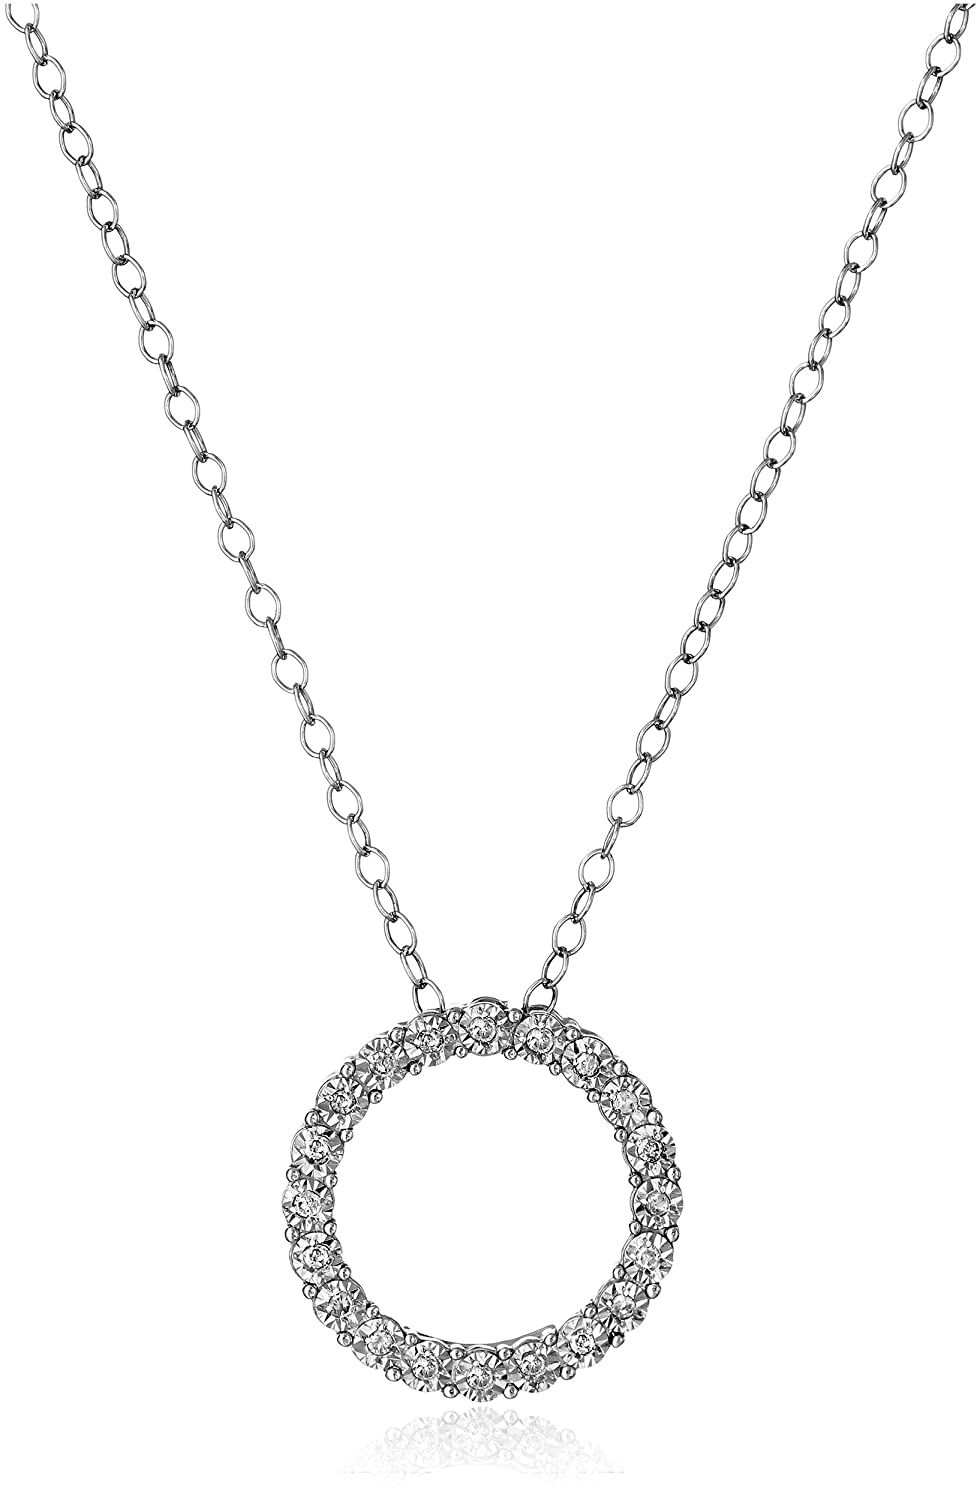 Amazon sterling silver and diamond circle pendant necklace 1 amazon sterling silver and diamond circle pendant necklace 110 cttw h i color i1 i2 clarity 18 jewelry aloadofball Gallery